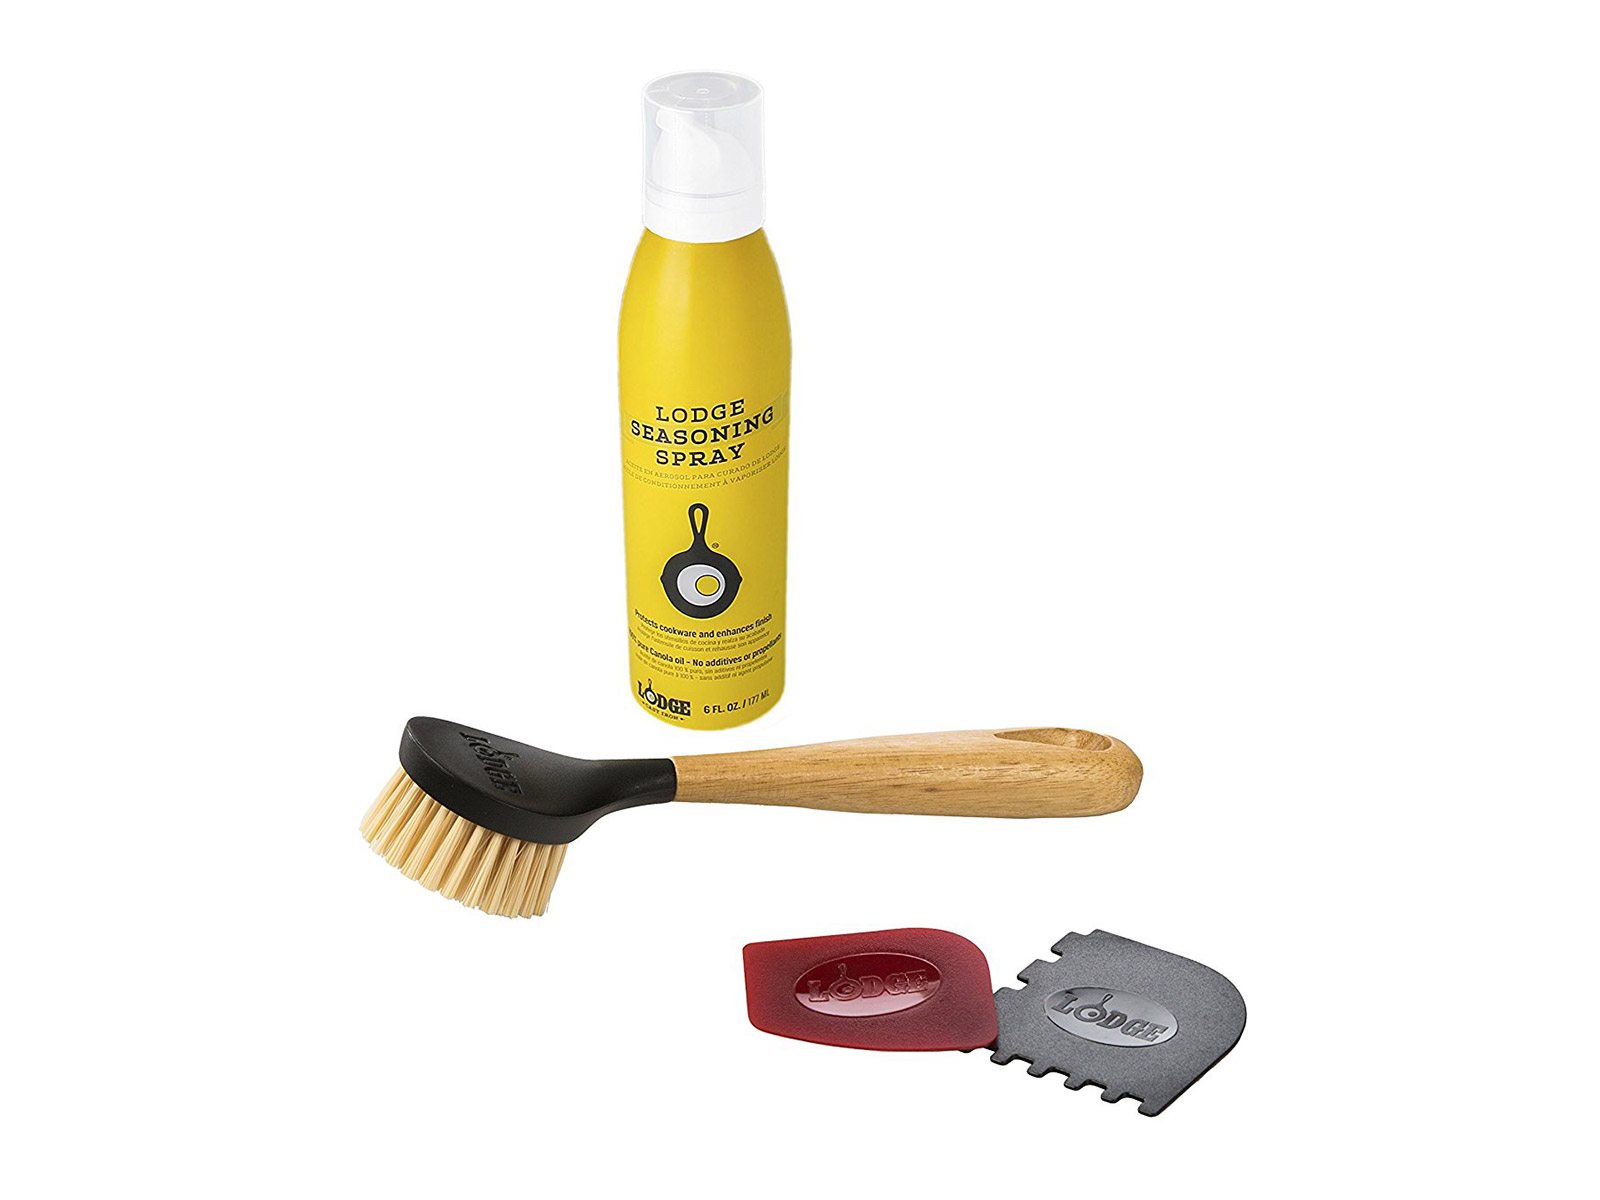 lodge cleaning kit